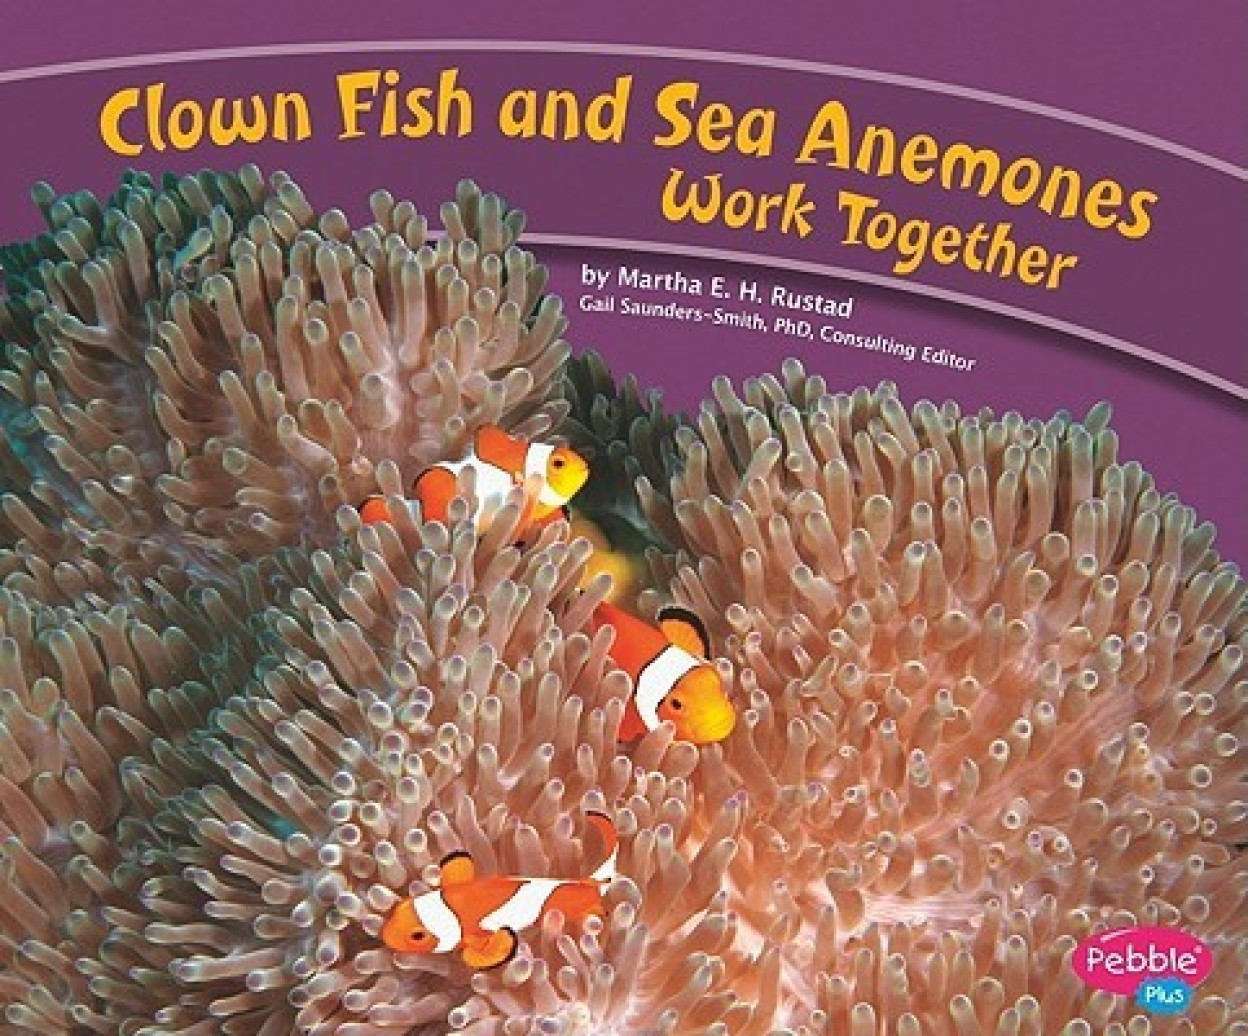 Clown Fish and Sea Anemones Work Together Hardcover